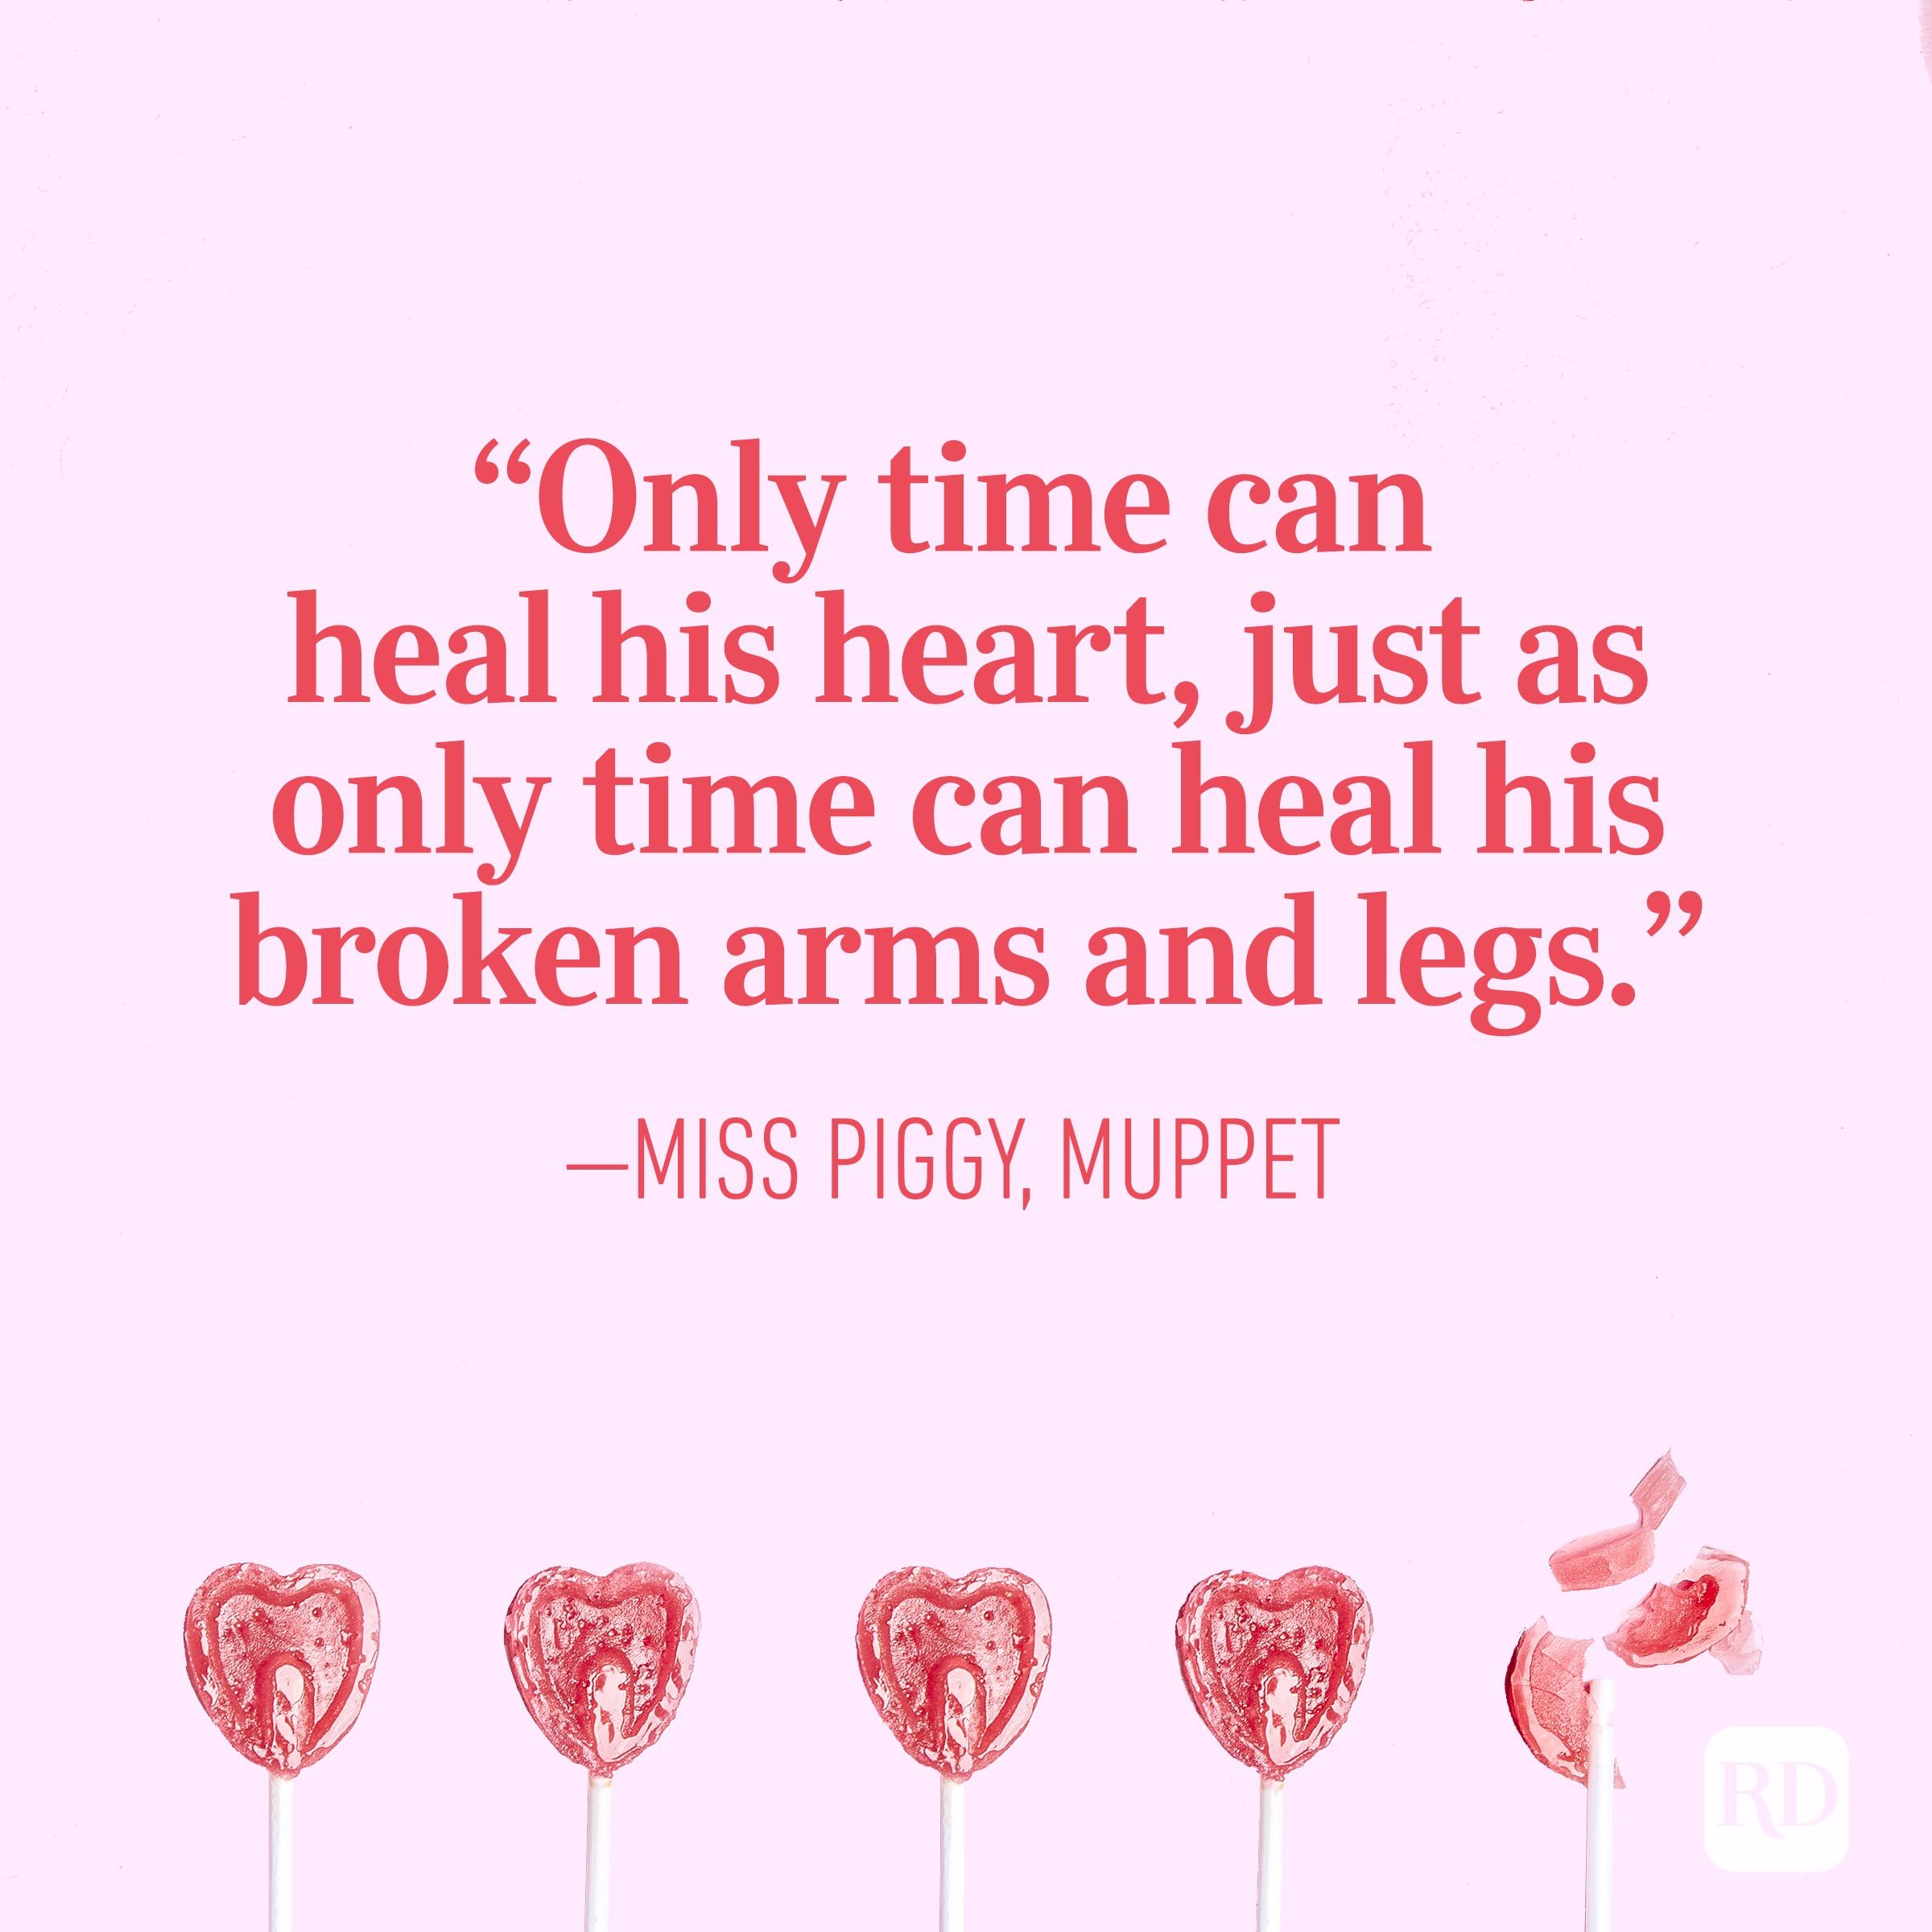 """Only time can heal his heart, just as only time can heal his broken arms and legs."" – Miss Piggy, Muppet"